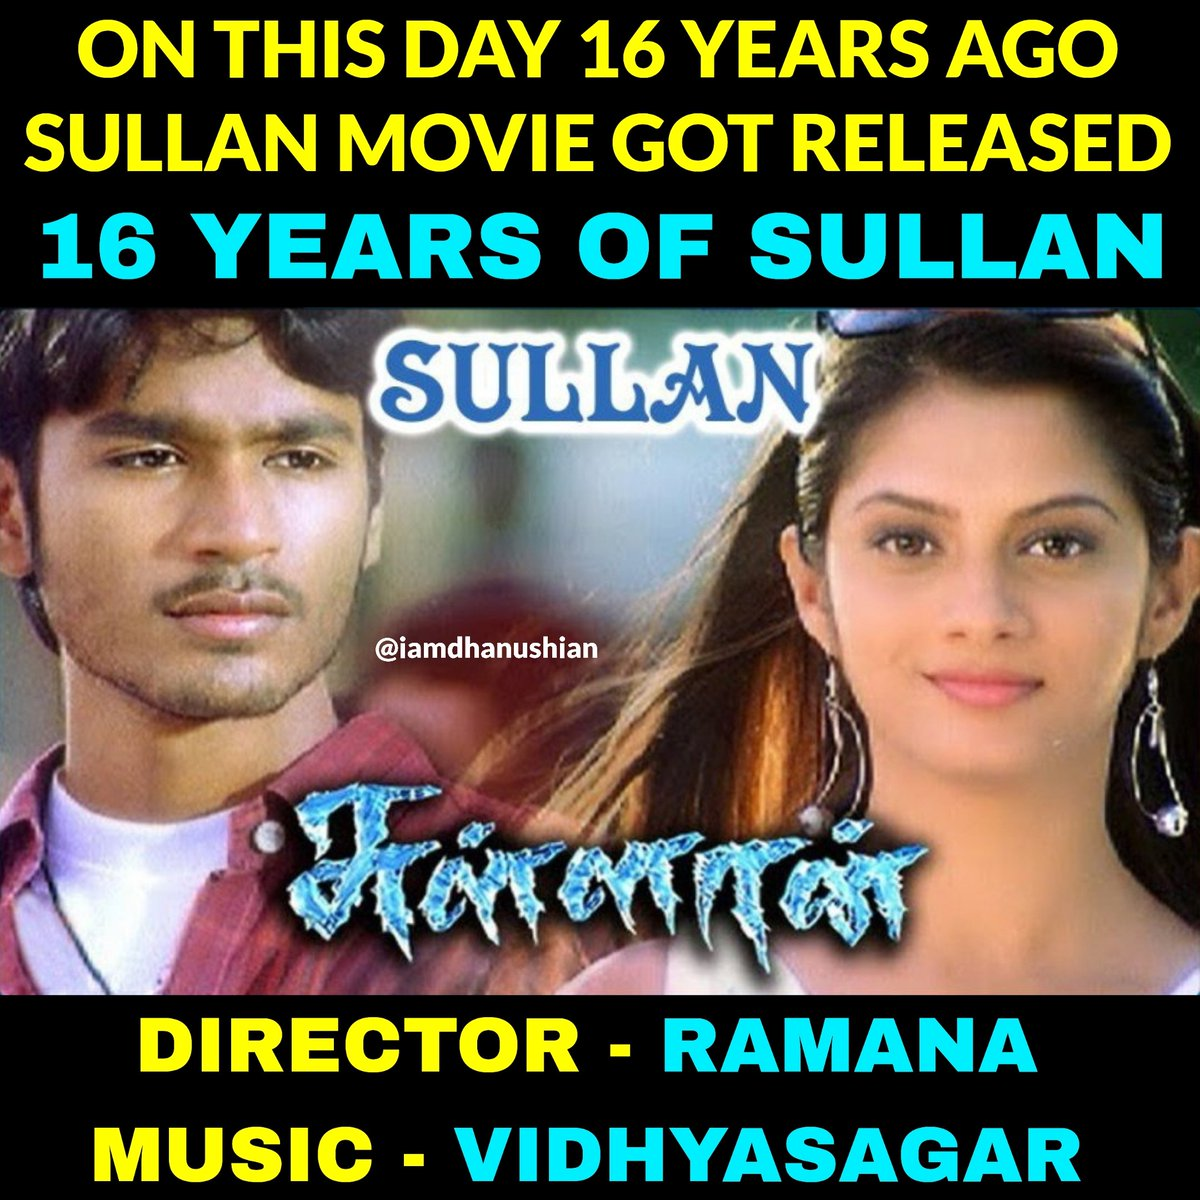 Vidyasagar songs ❤️😍🔥  #Sullan #Dhanush #Manivannan #Pasupathy #SindhuTolani #EaswariRao #Sanghavi #Ramana #Vidyasagar   #16YearsOfSullan Waiting for #JagameThandhiram https://t.co/YMkossSBHb